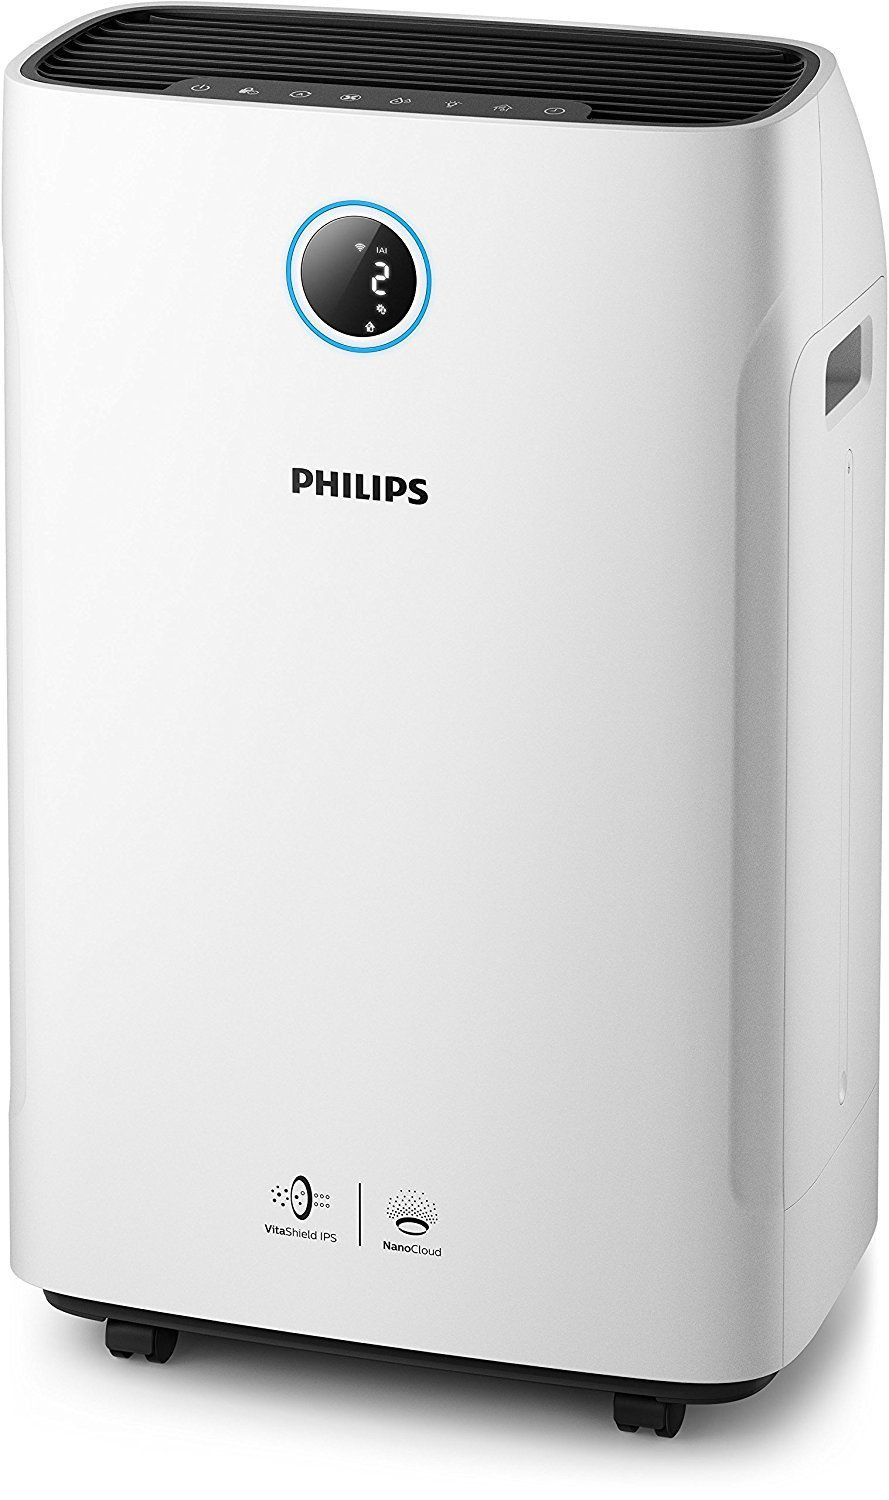 Philips 2-in-1 Air Purifier and Humidifier Series 3000/4000 featured image